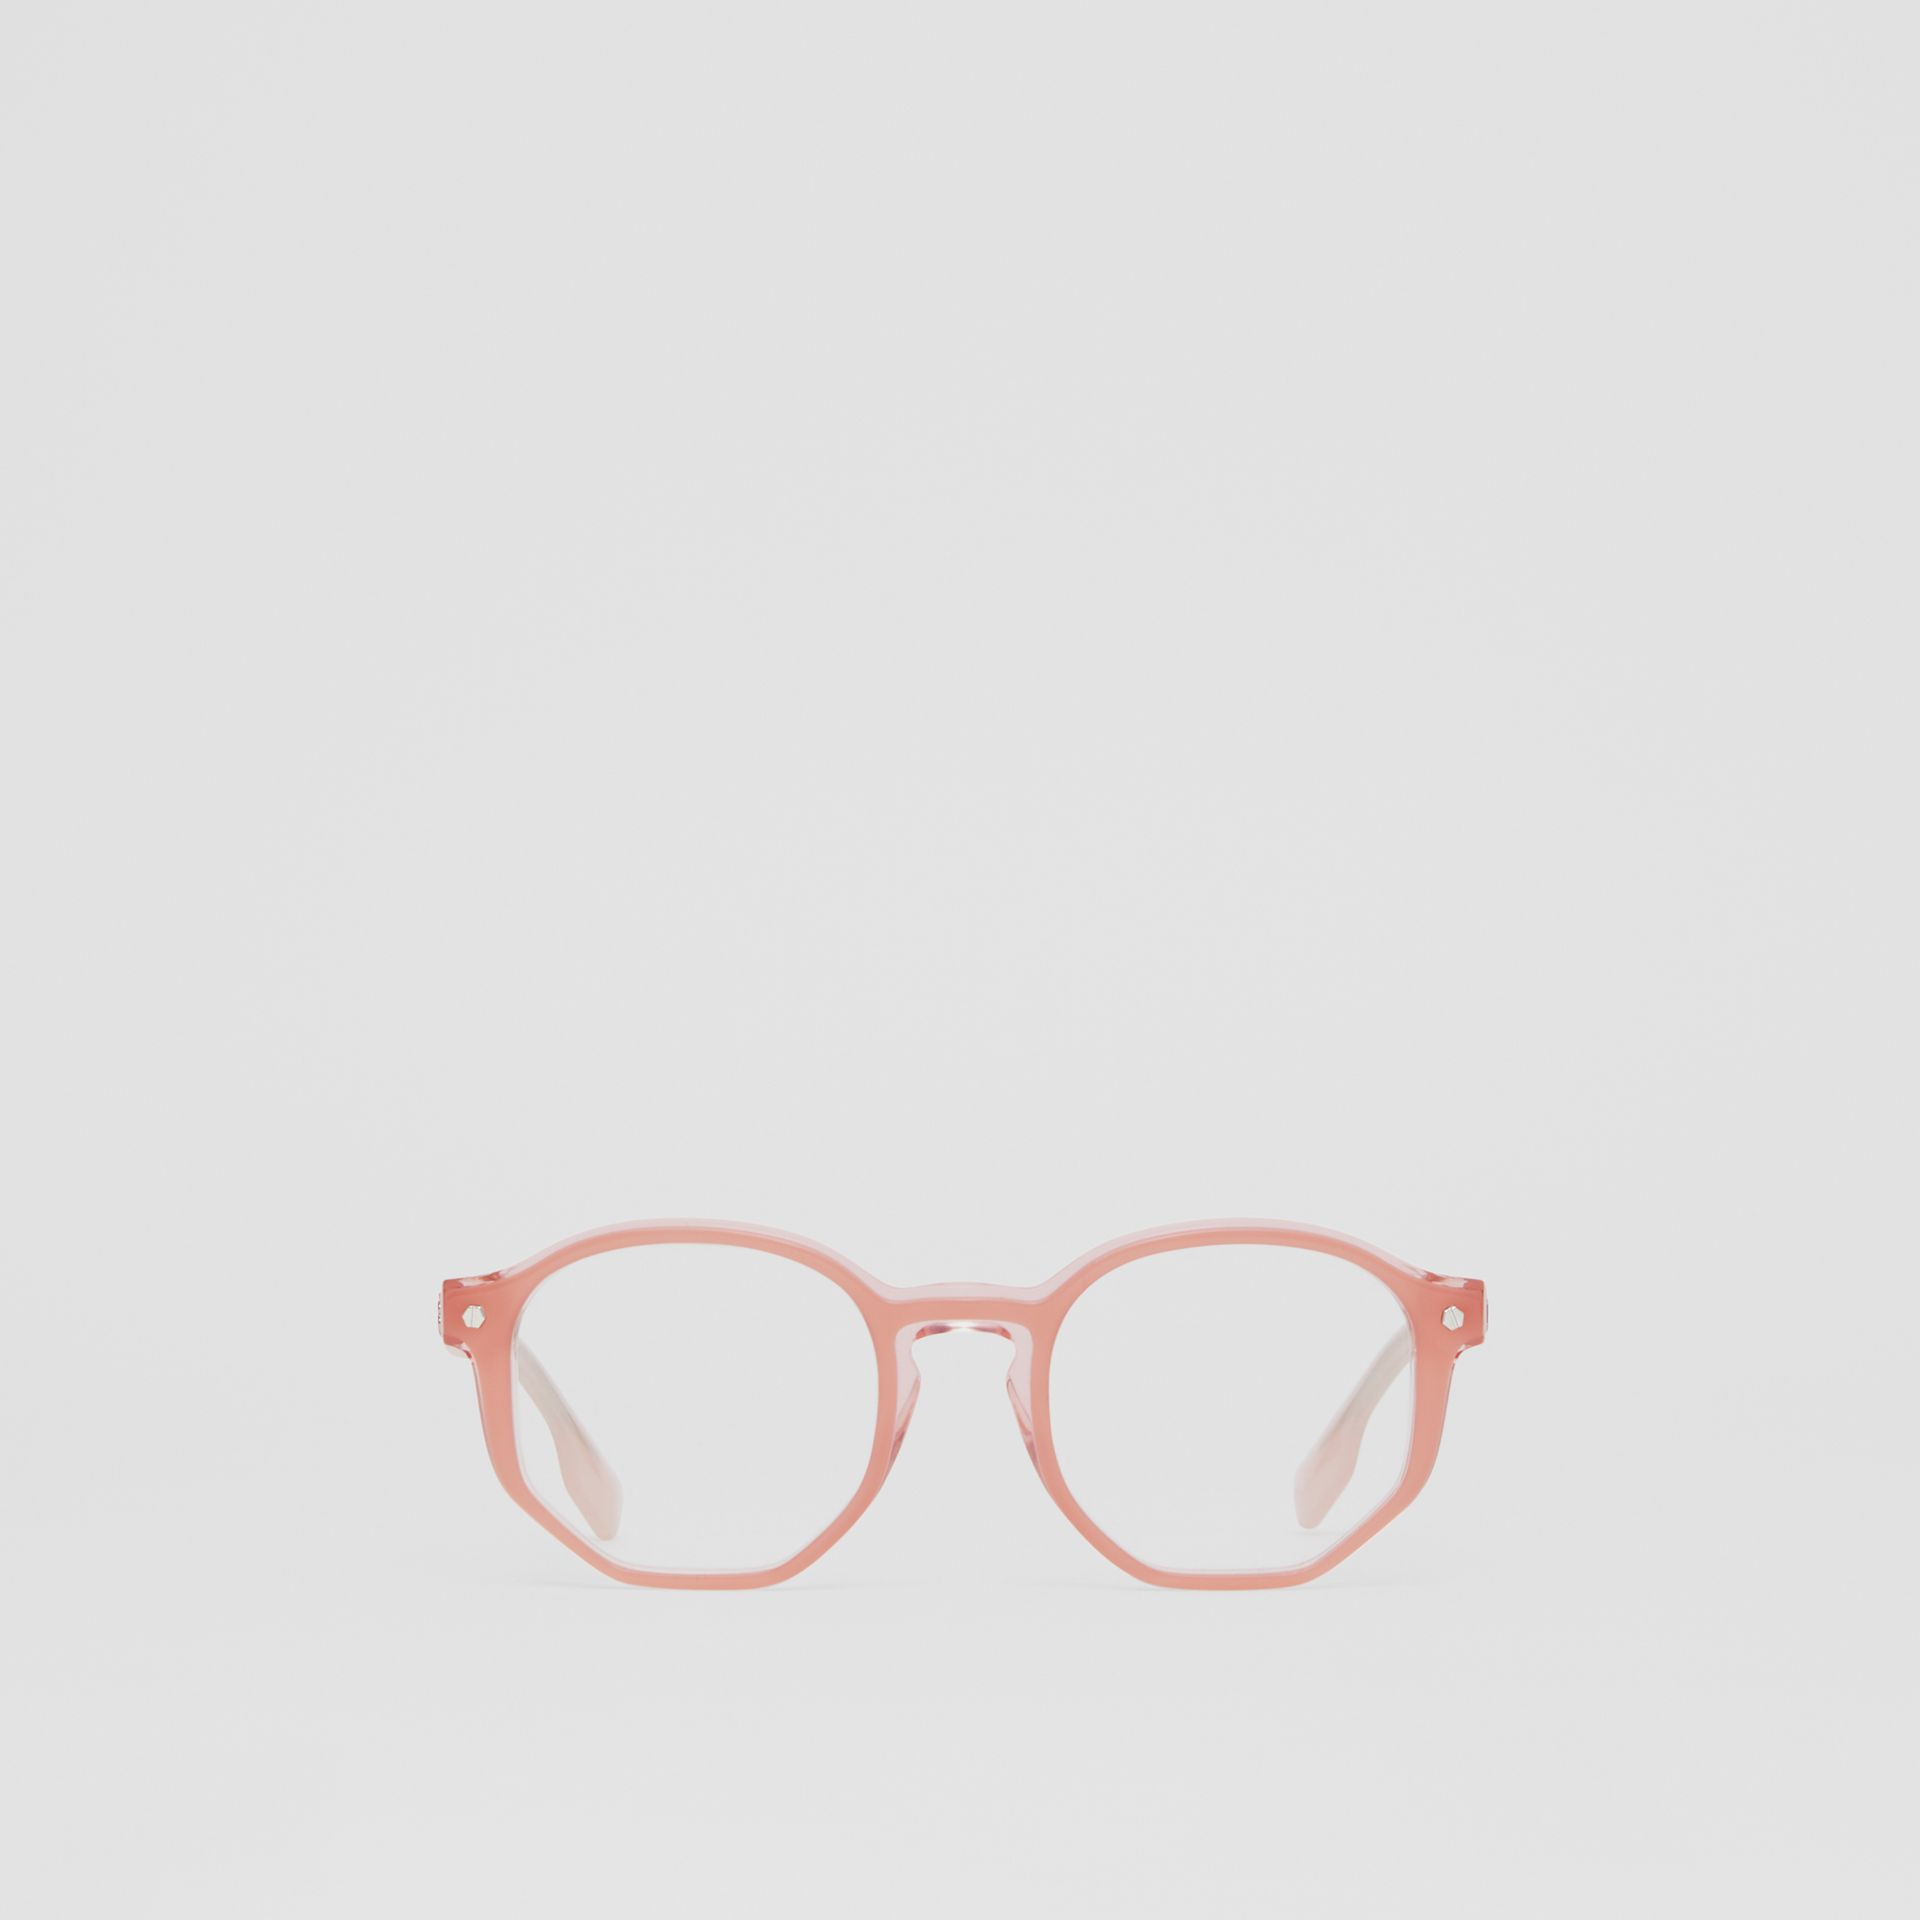 Geometric Optical Frames in Pink - Women | Burberry United Kingdom - gallery image 0